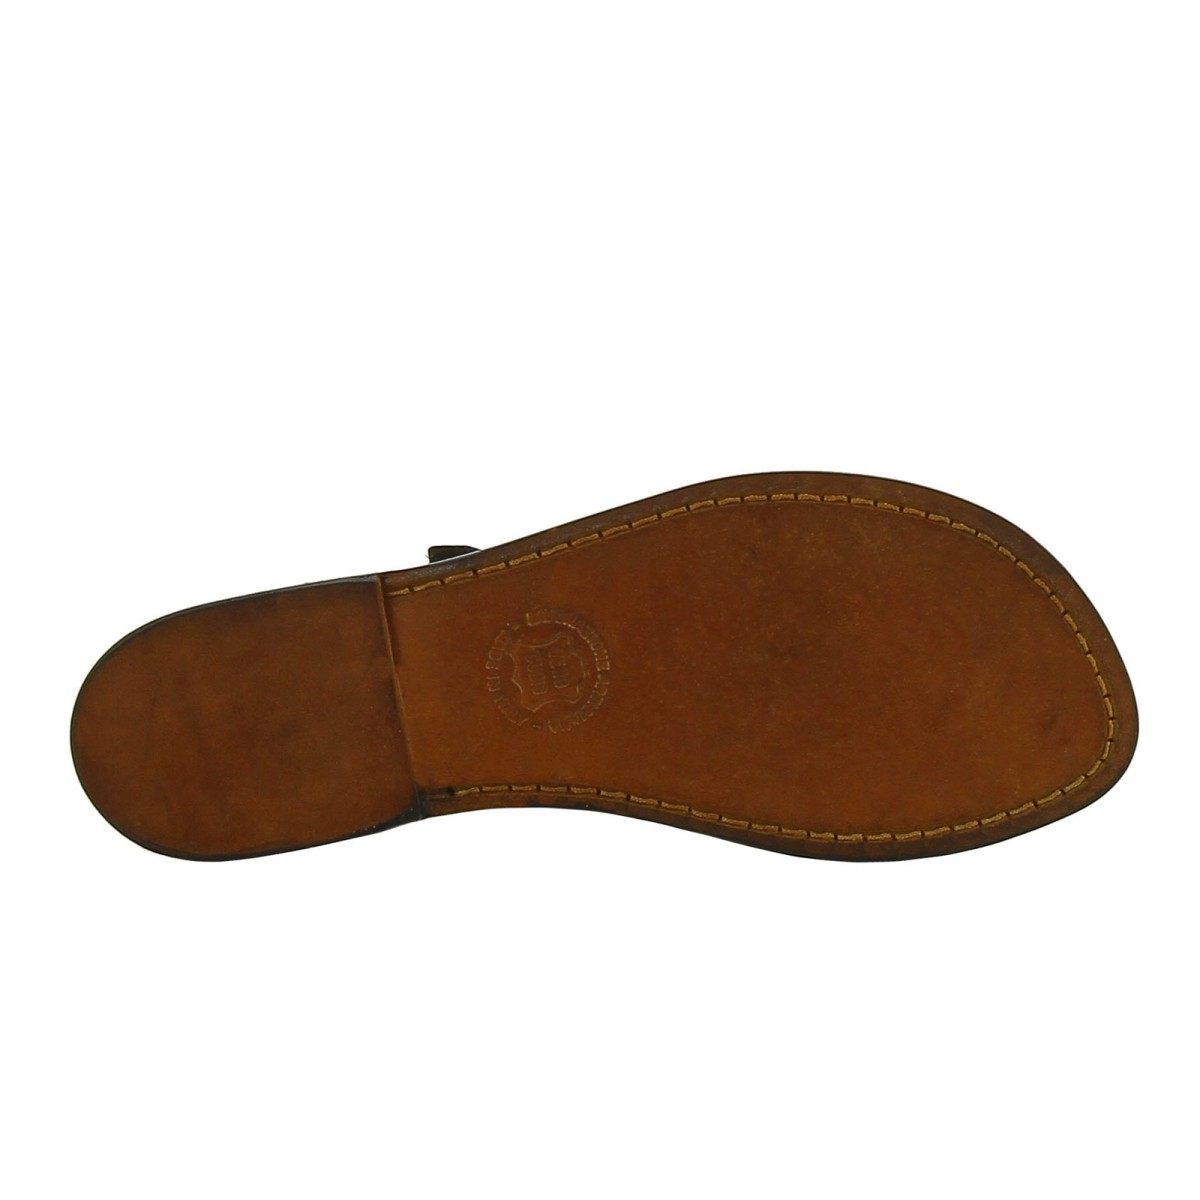 f08c18a6204544 ... Handmade leather thong sandals for women in dark brown